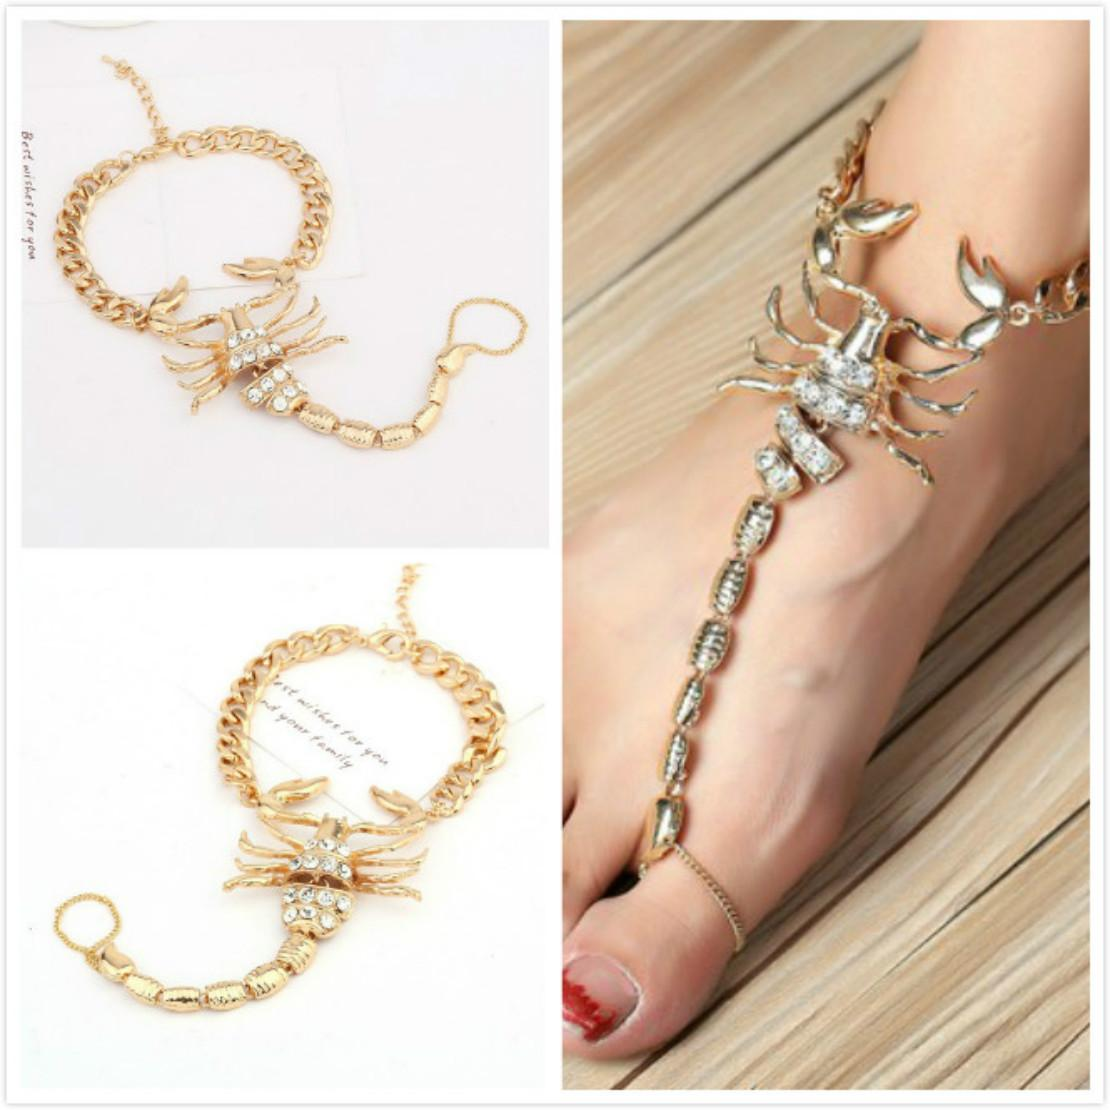 chain beach shipping jewelry star anklets yoga free charm shippinganklets gift anklet bracelet new foot layer multi pendant summer leg